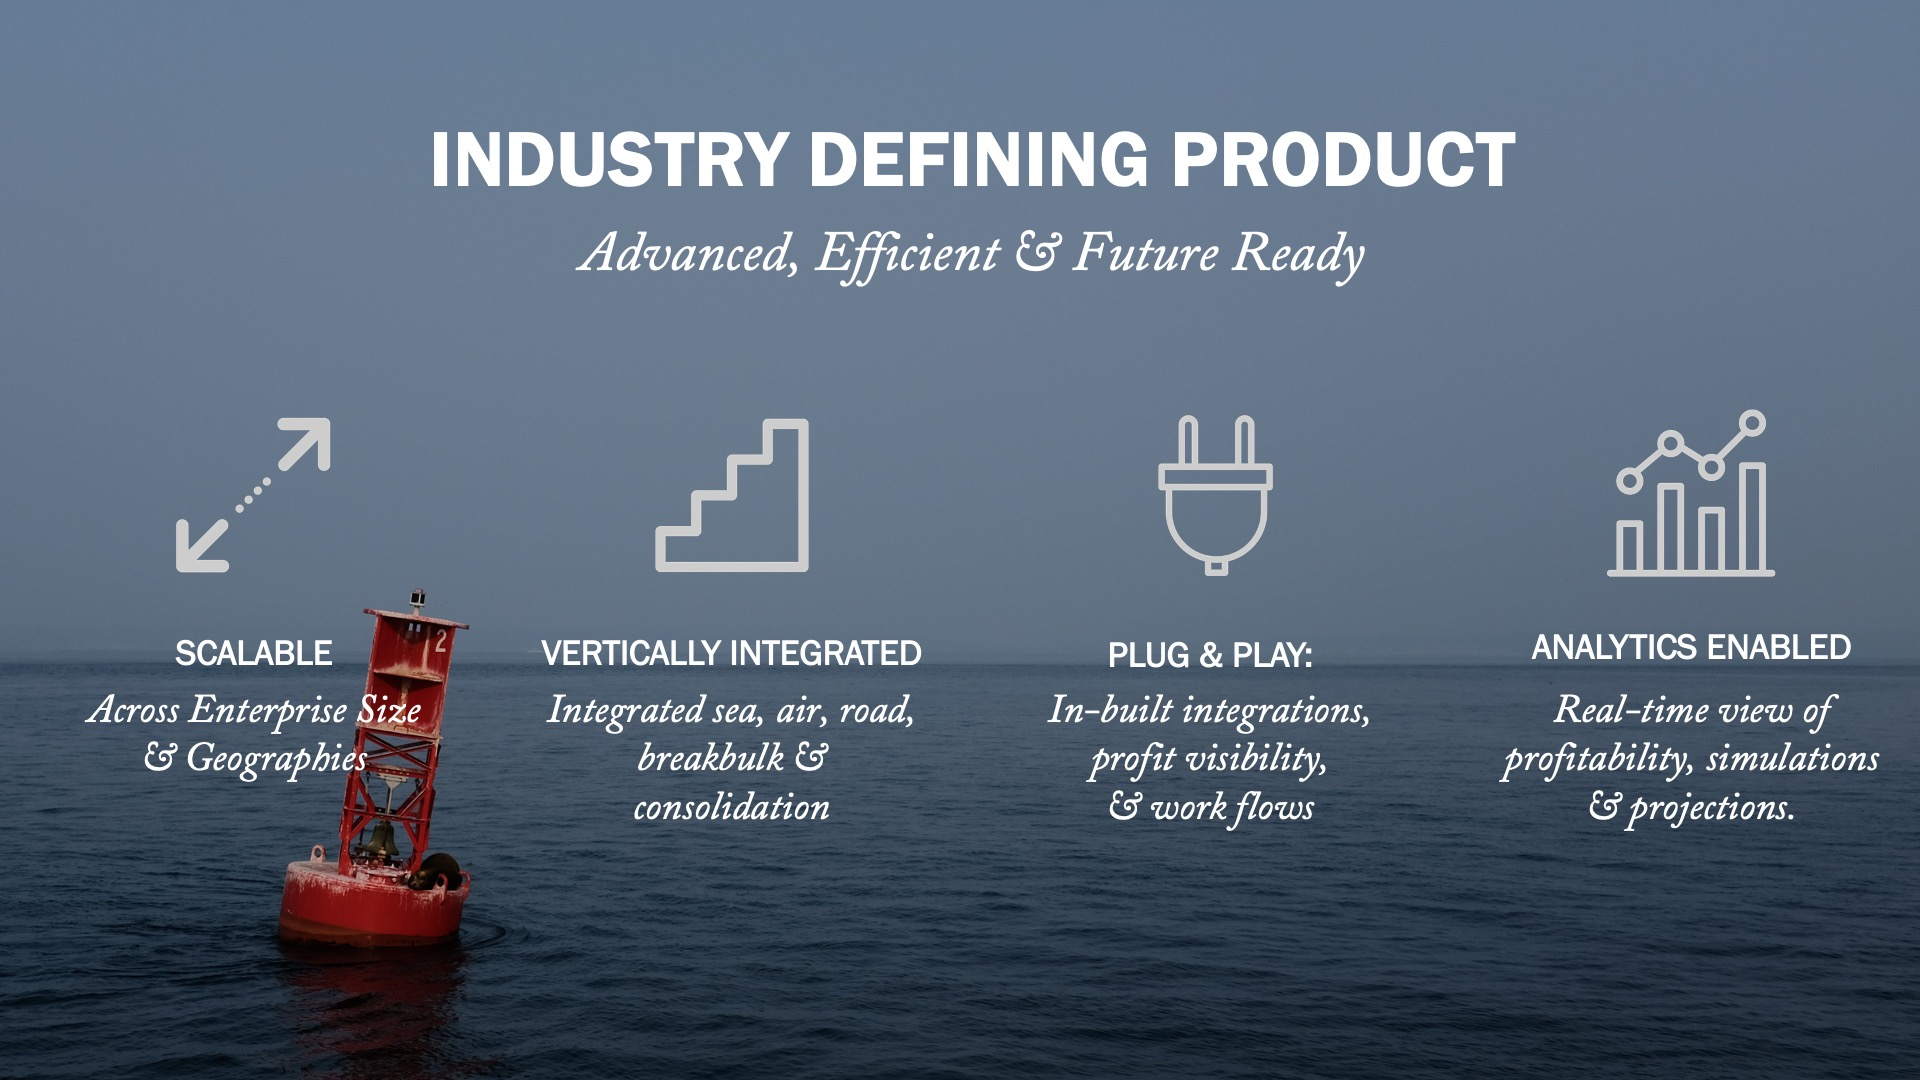 Industry Defining Product